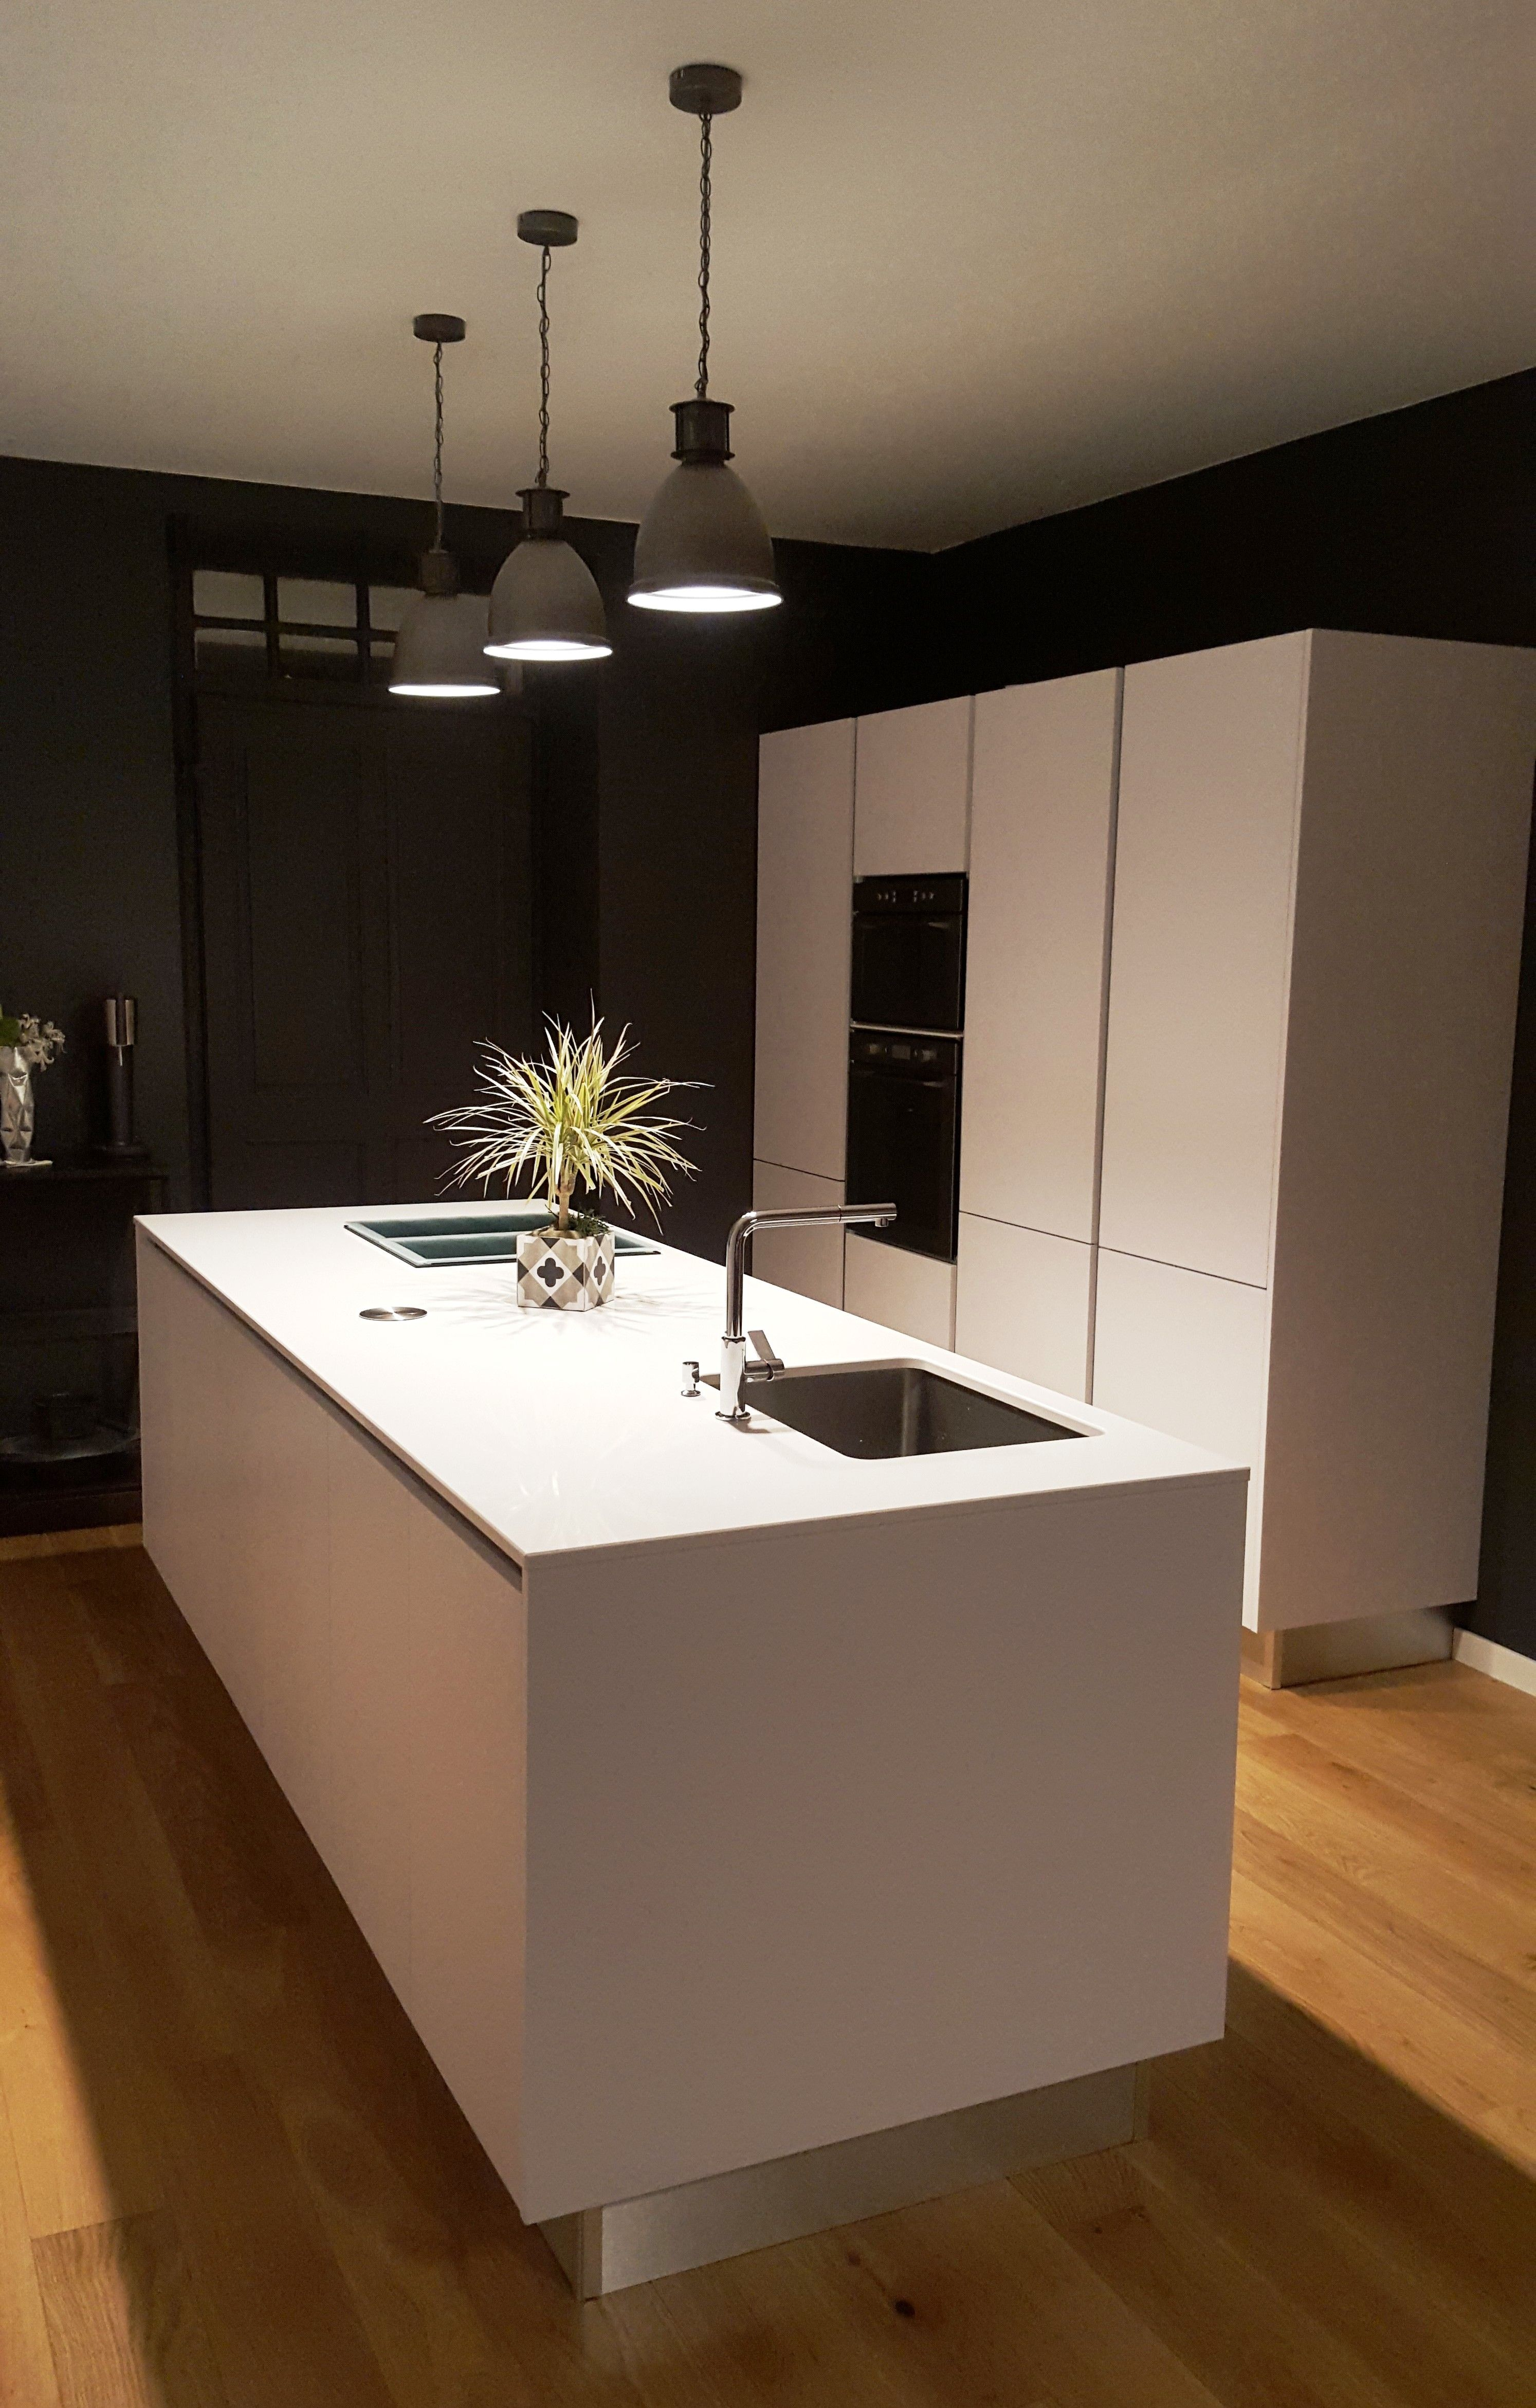 Une Cuisine Mulhouse Interior Garden Kitchen Modern And Modern